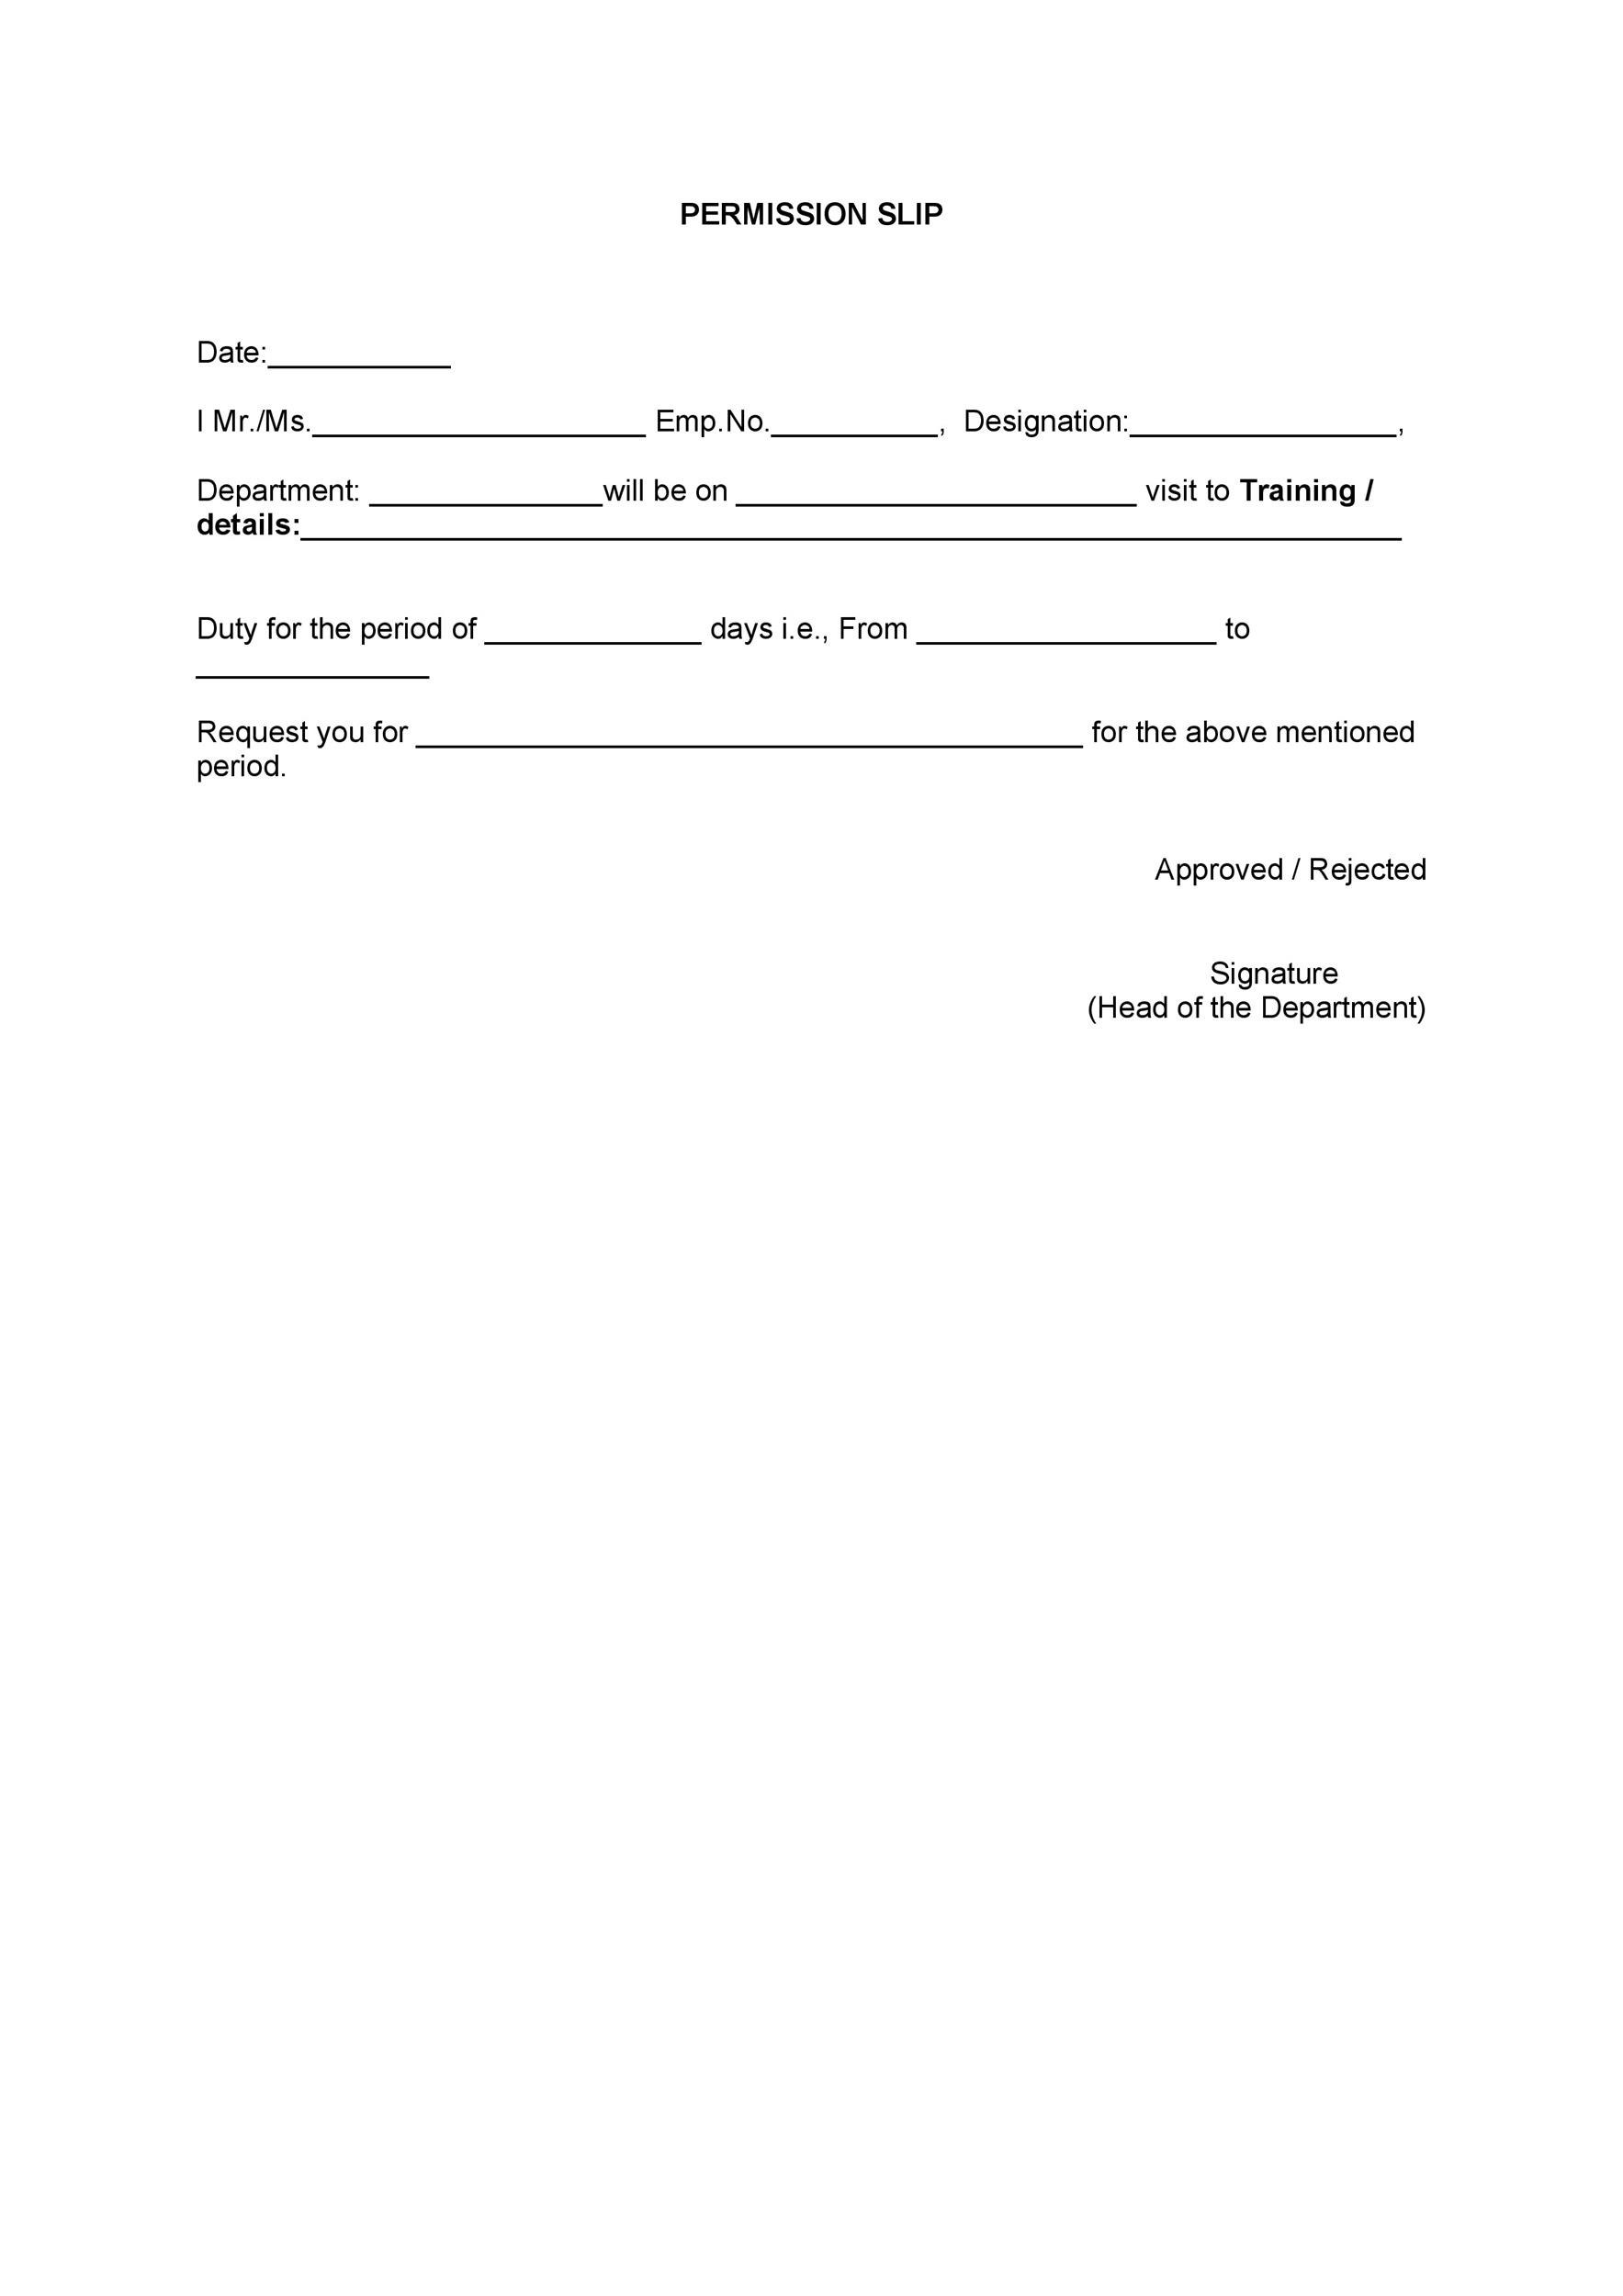 35 Permission Slip Templates  Field Trip Forms - permission slip template